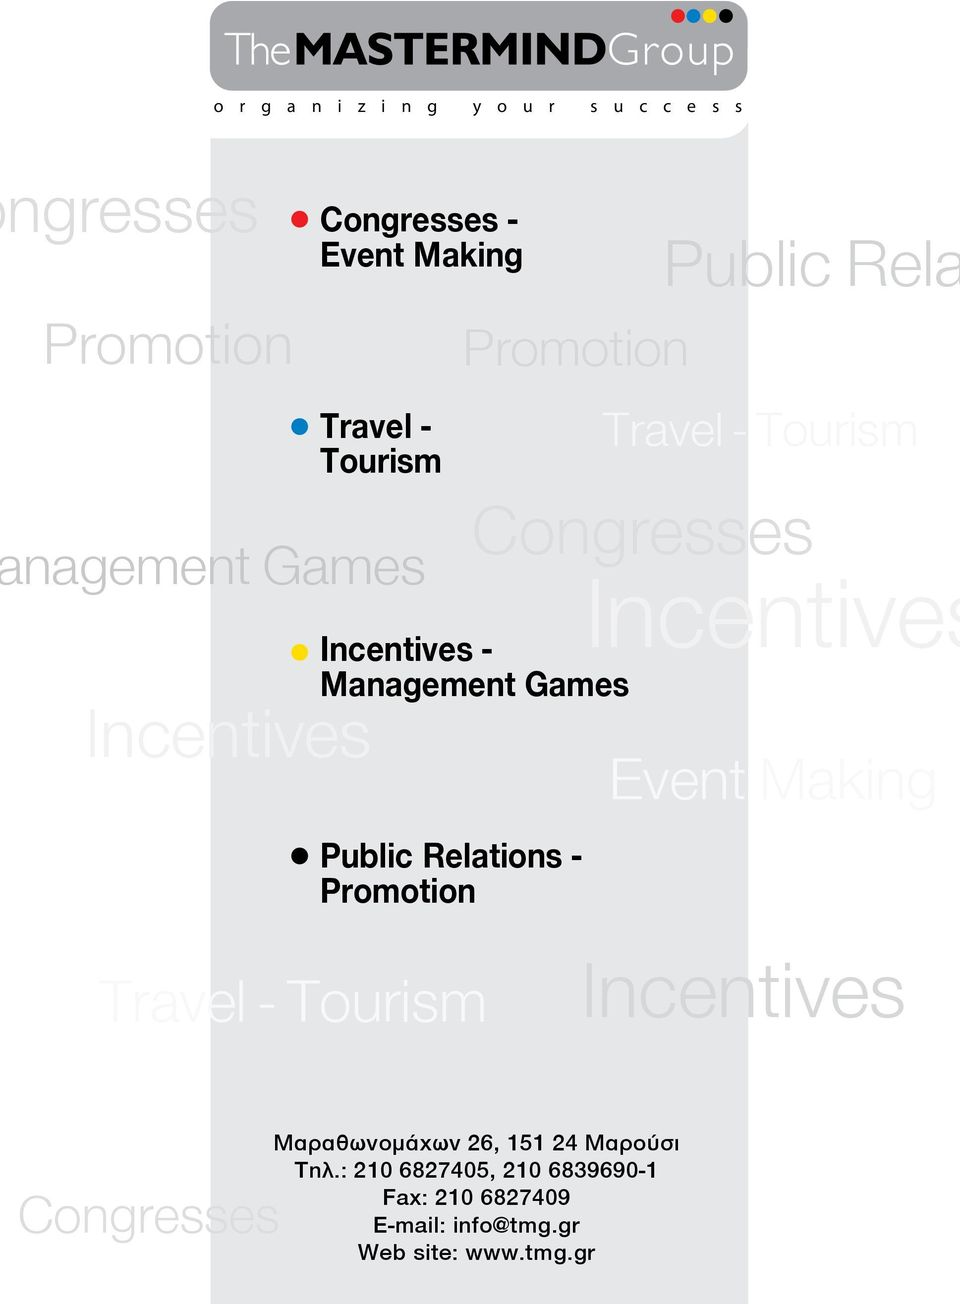 Relations - Promotion Public Rela Incentives Event Making Travel - Tourism Incentives Congresses